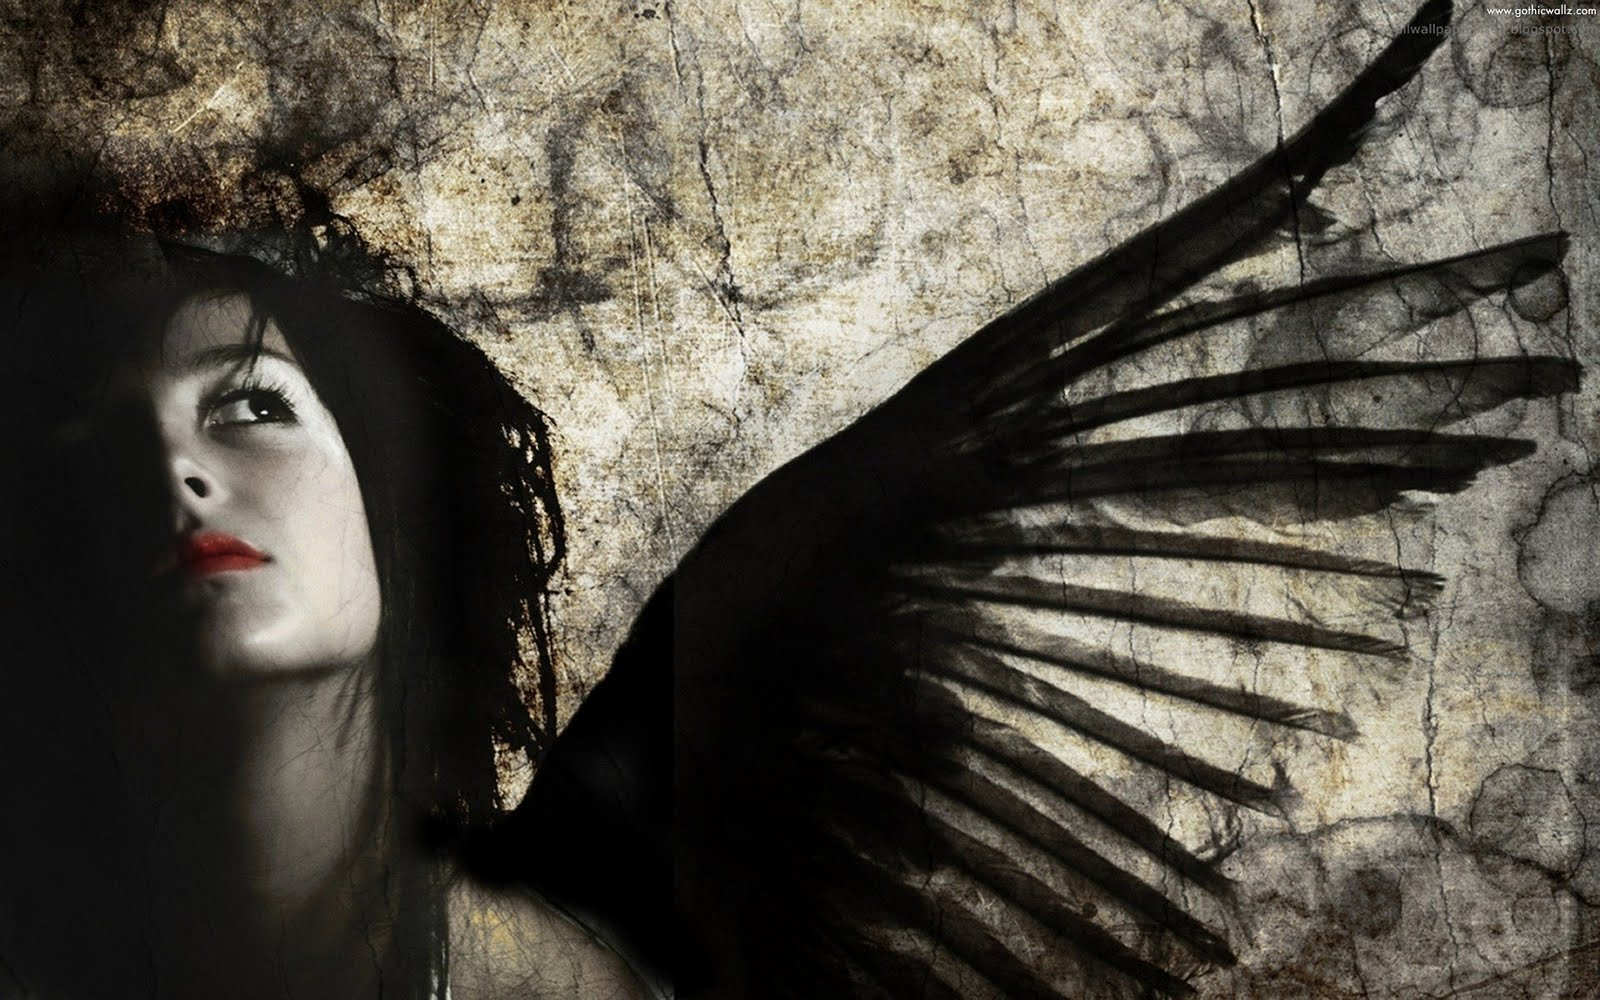 Horror Grunge Girl | Gothic Wallpaper Download